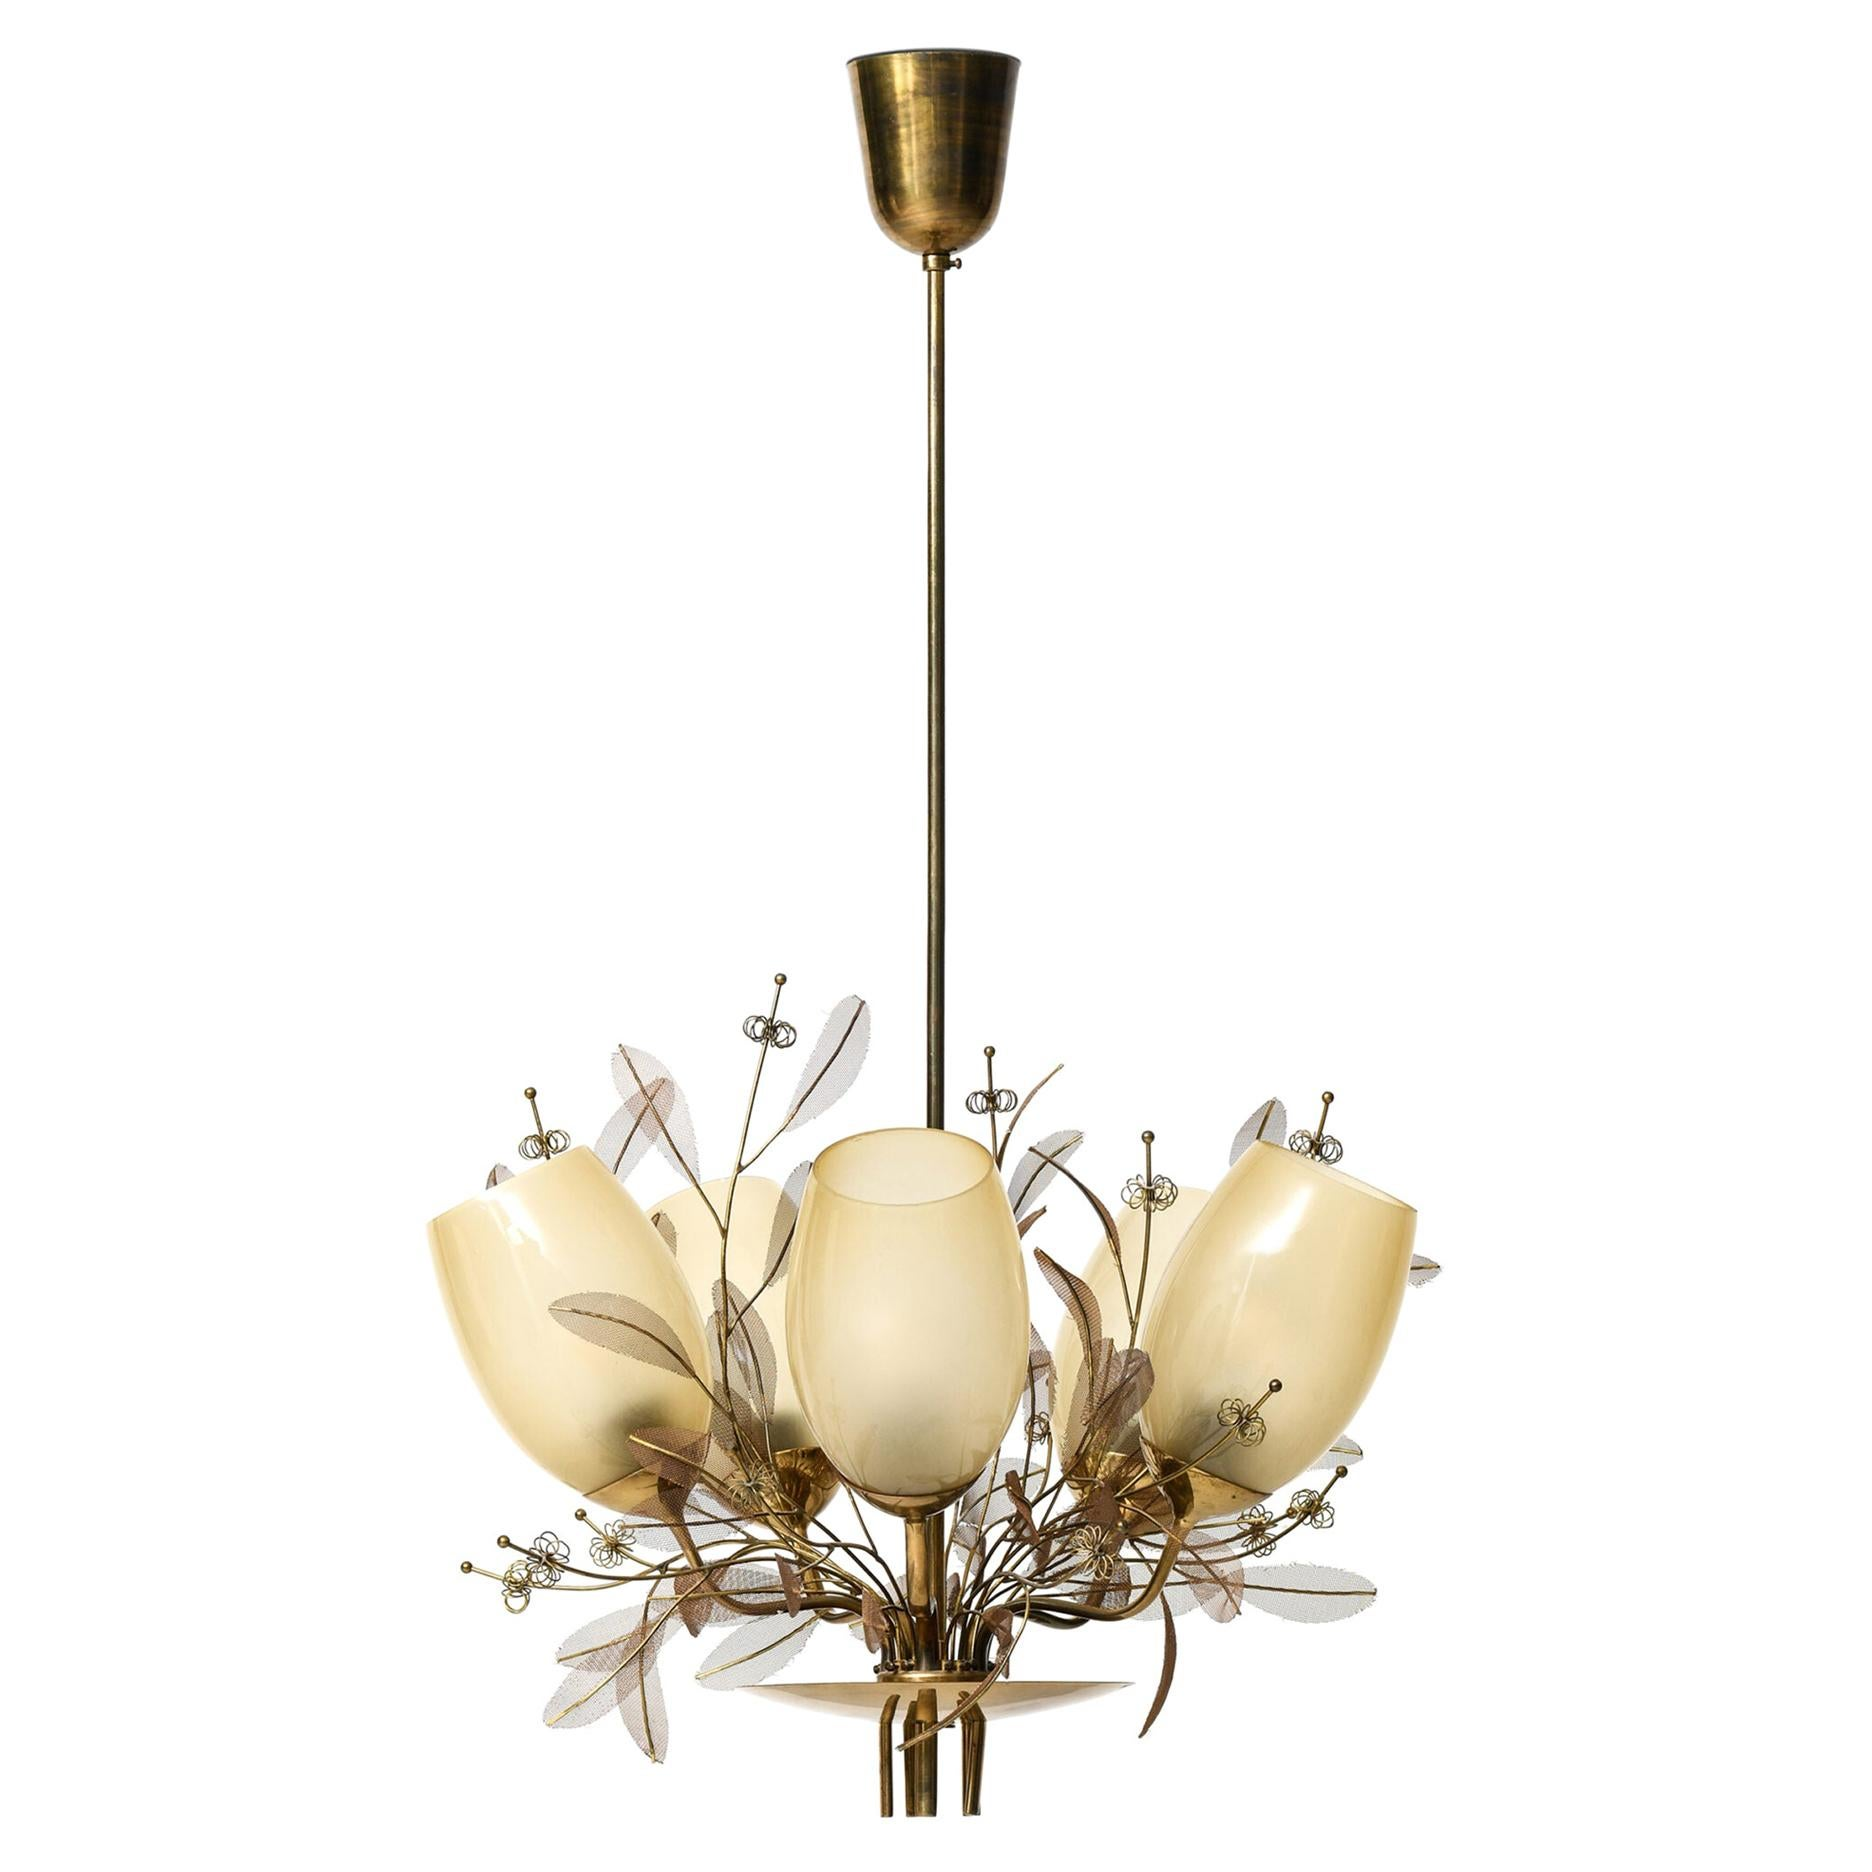 Paavo Tynell Ceiling Lamp Model 9029/5 Produced by Taito Oy in Finland